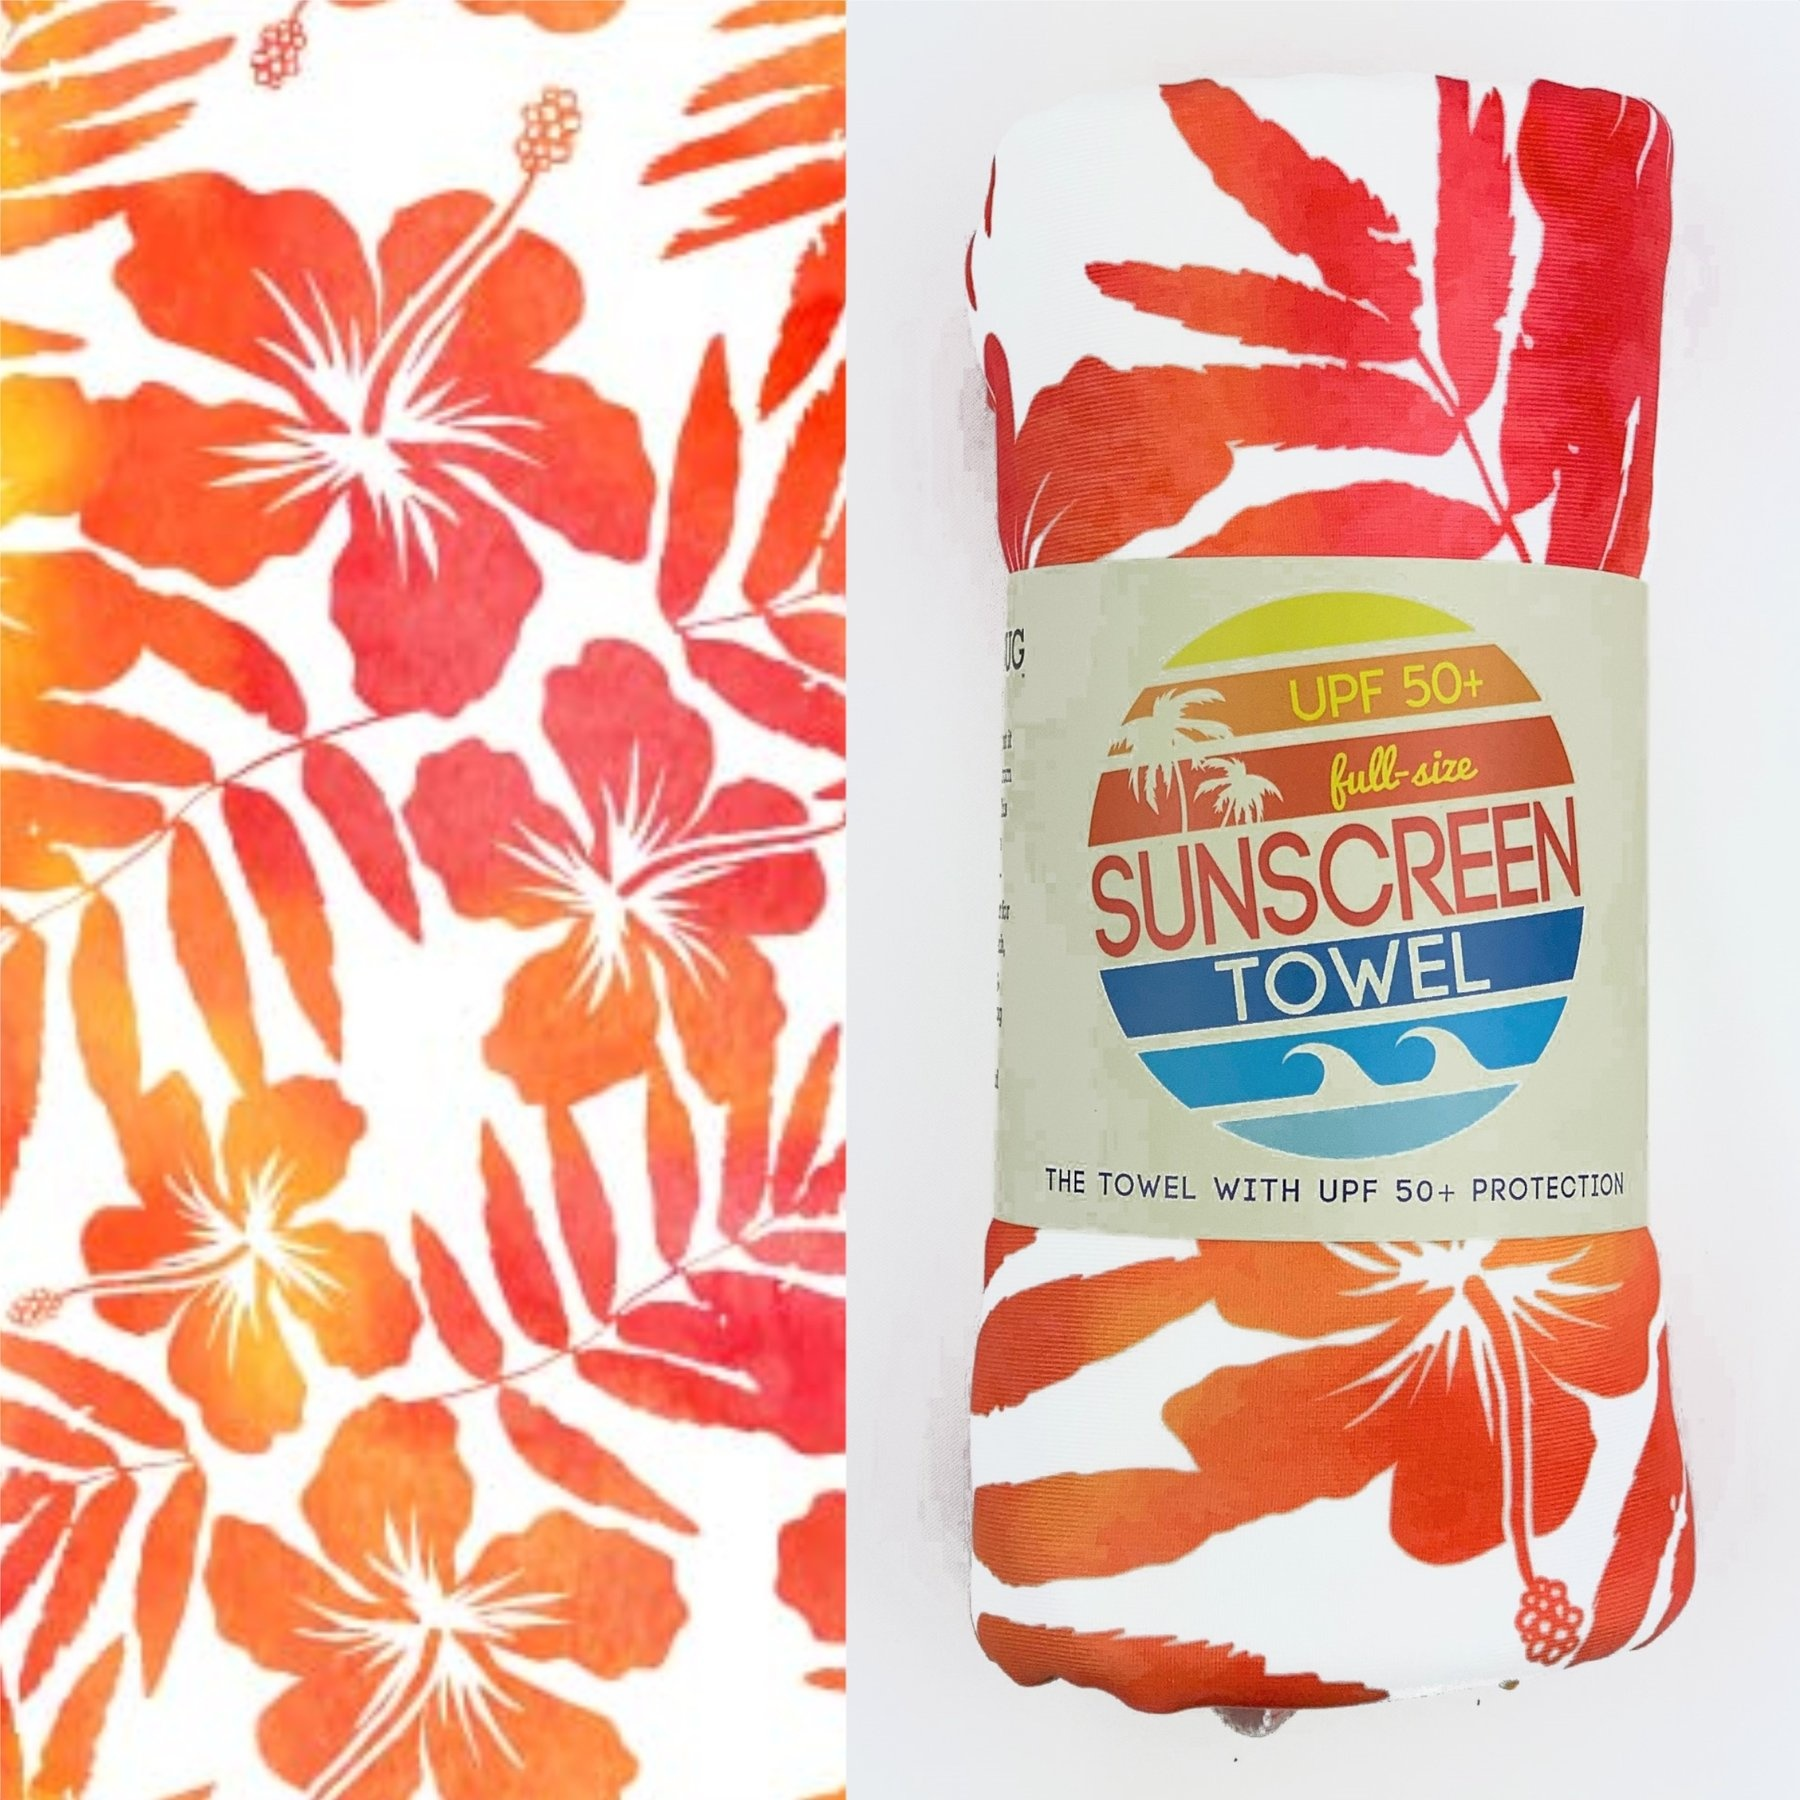 Luv Bug Co. Sunscreen Towel - Full Size UPF50